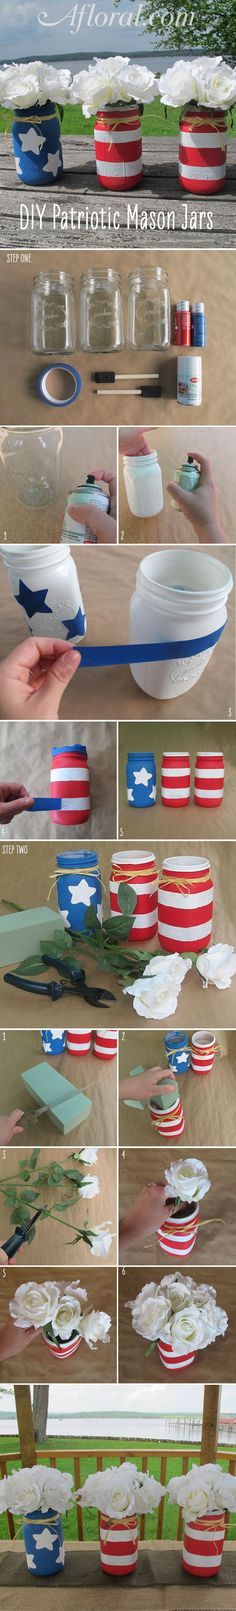 DIY Patriotic Mason Jars. You can DIY these adorable Flag Mason Jars for your 4th of July wedding or Memorial Day centerpiece. Find everything you need at Afloral.com.